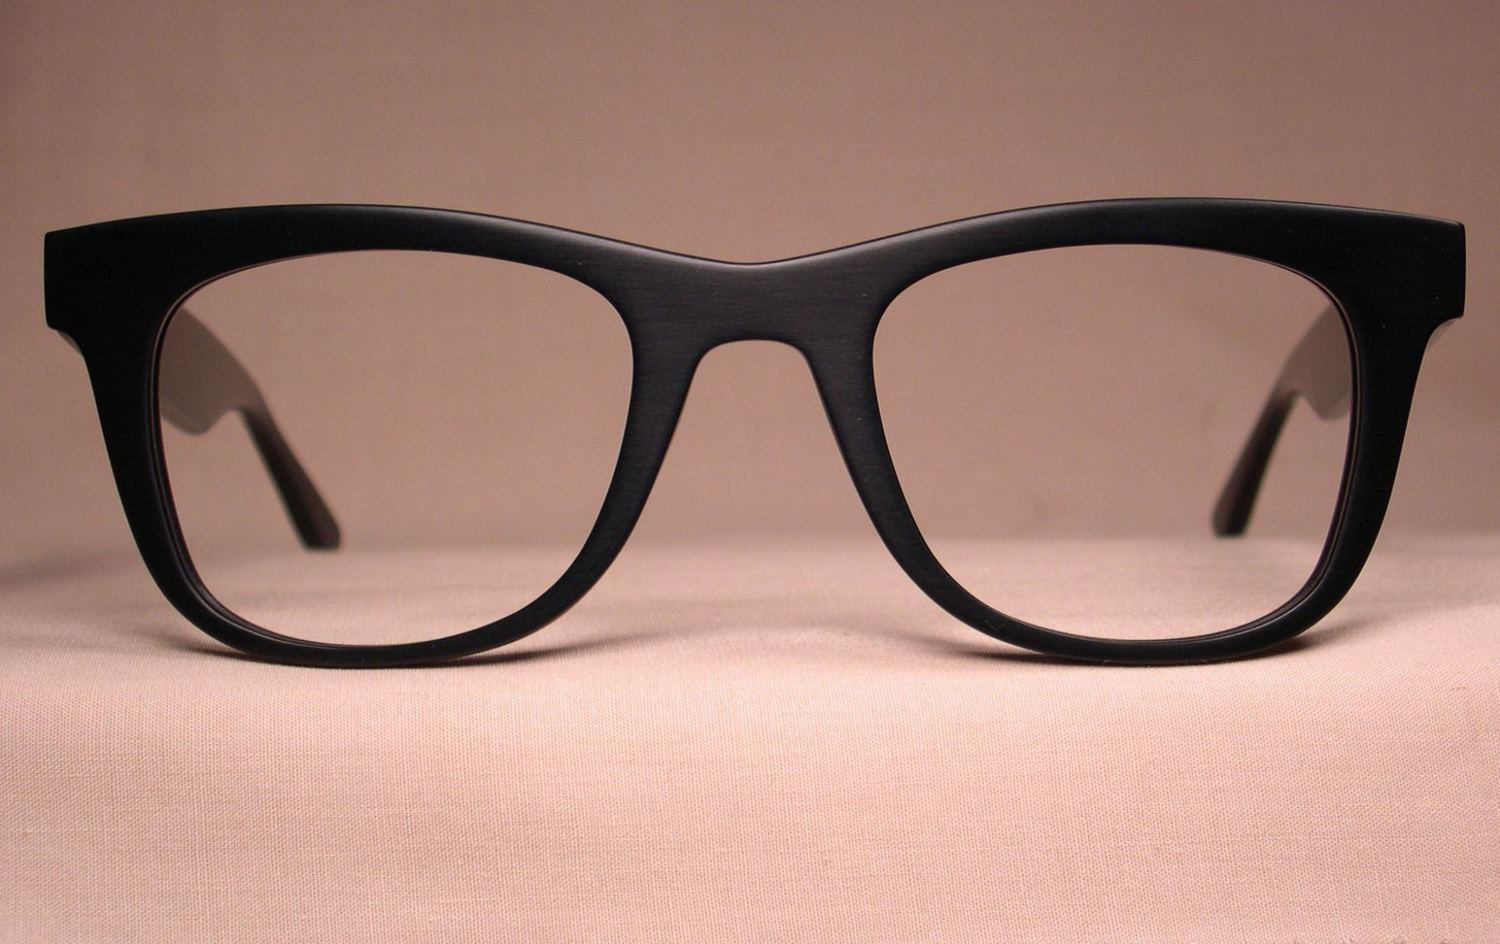 Indivijual-Custom-Glasses-46.jpg